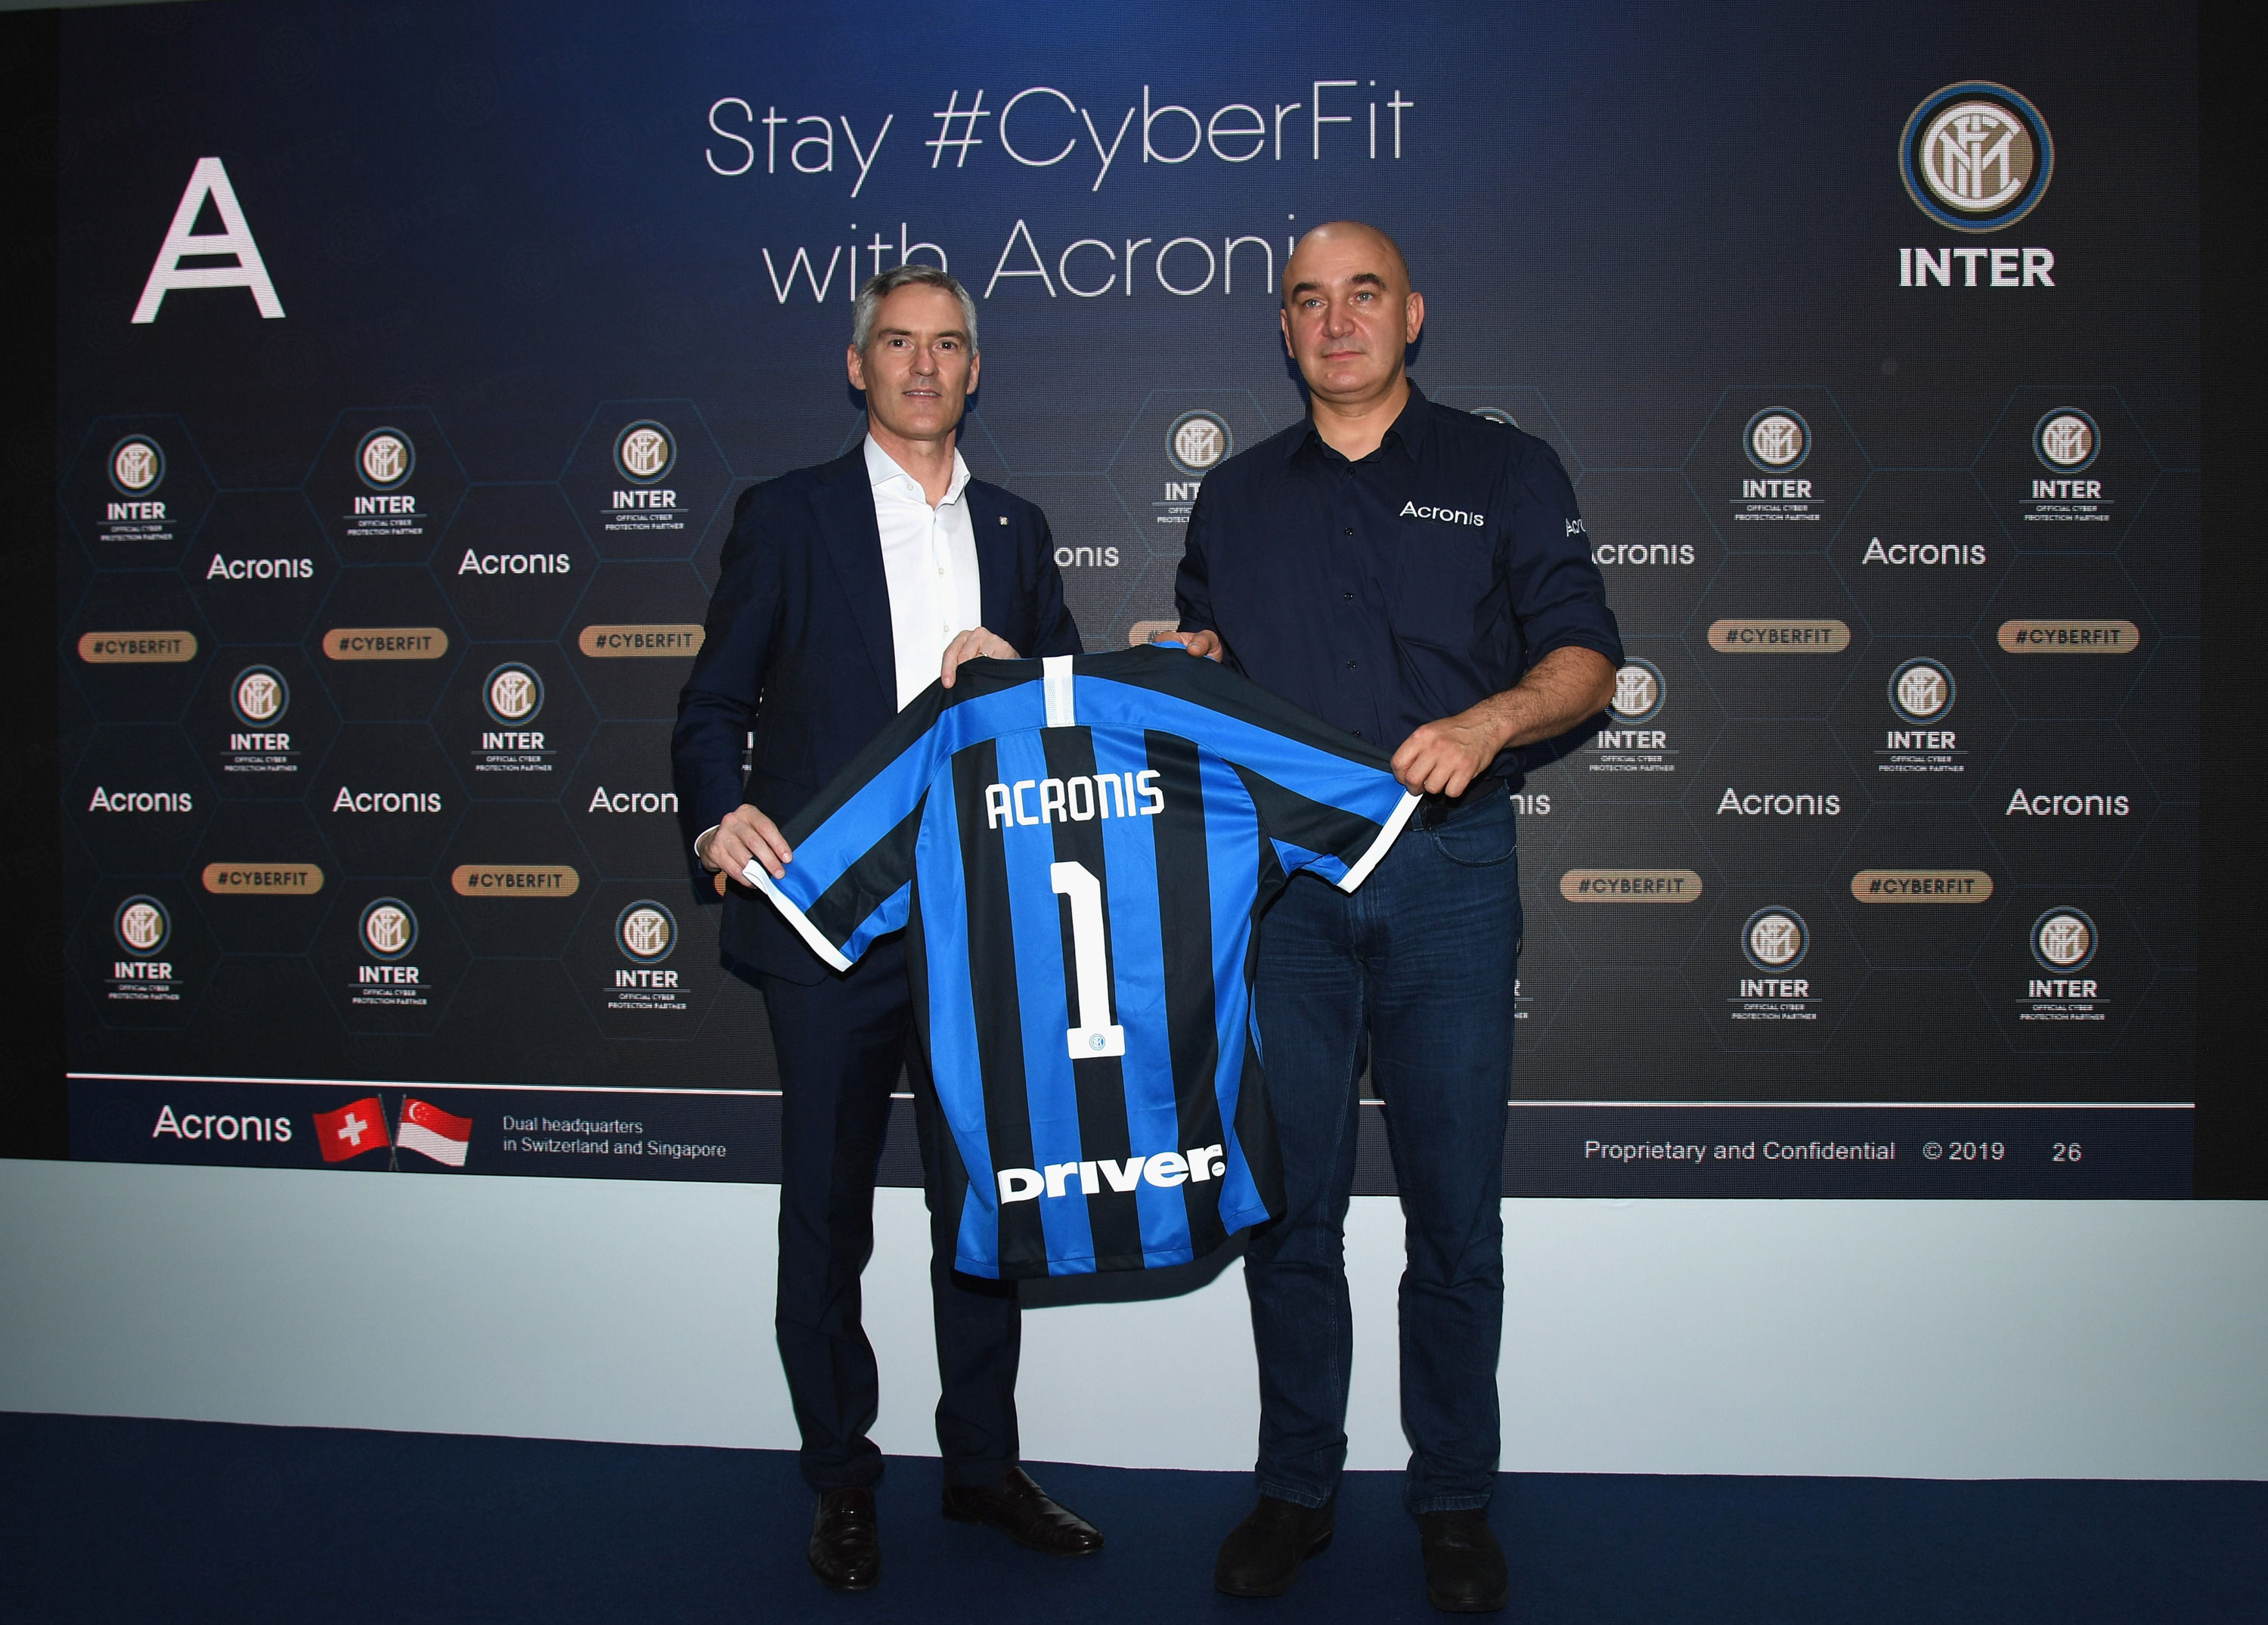 Cyber Protection: nasce la partnership tra Inter e Acronis